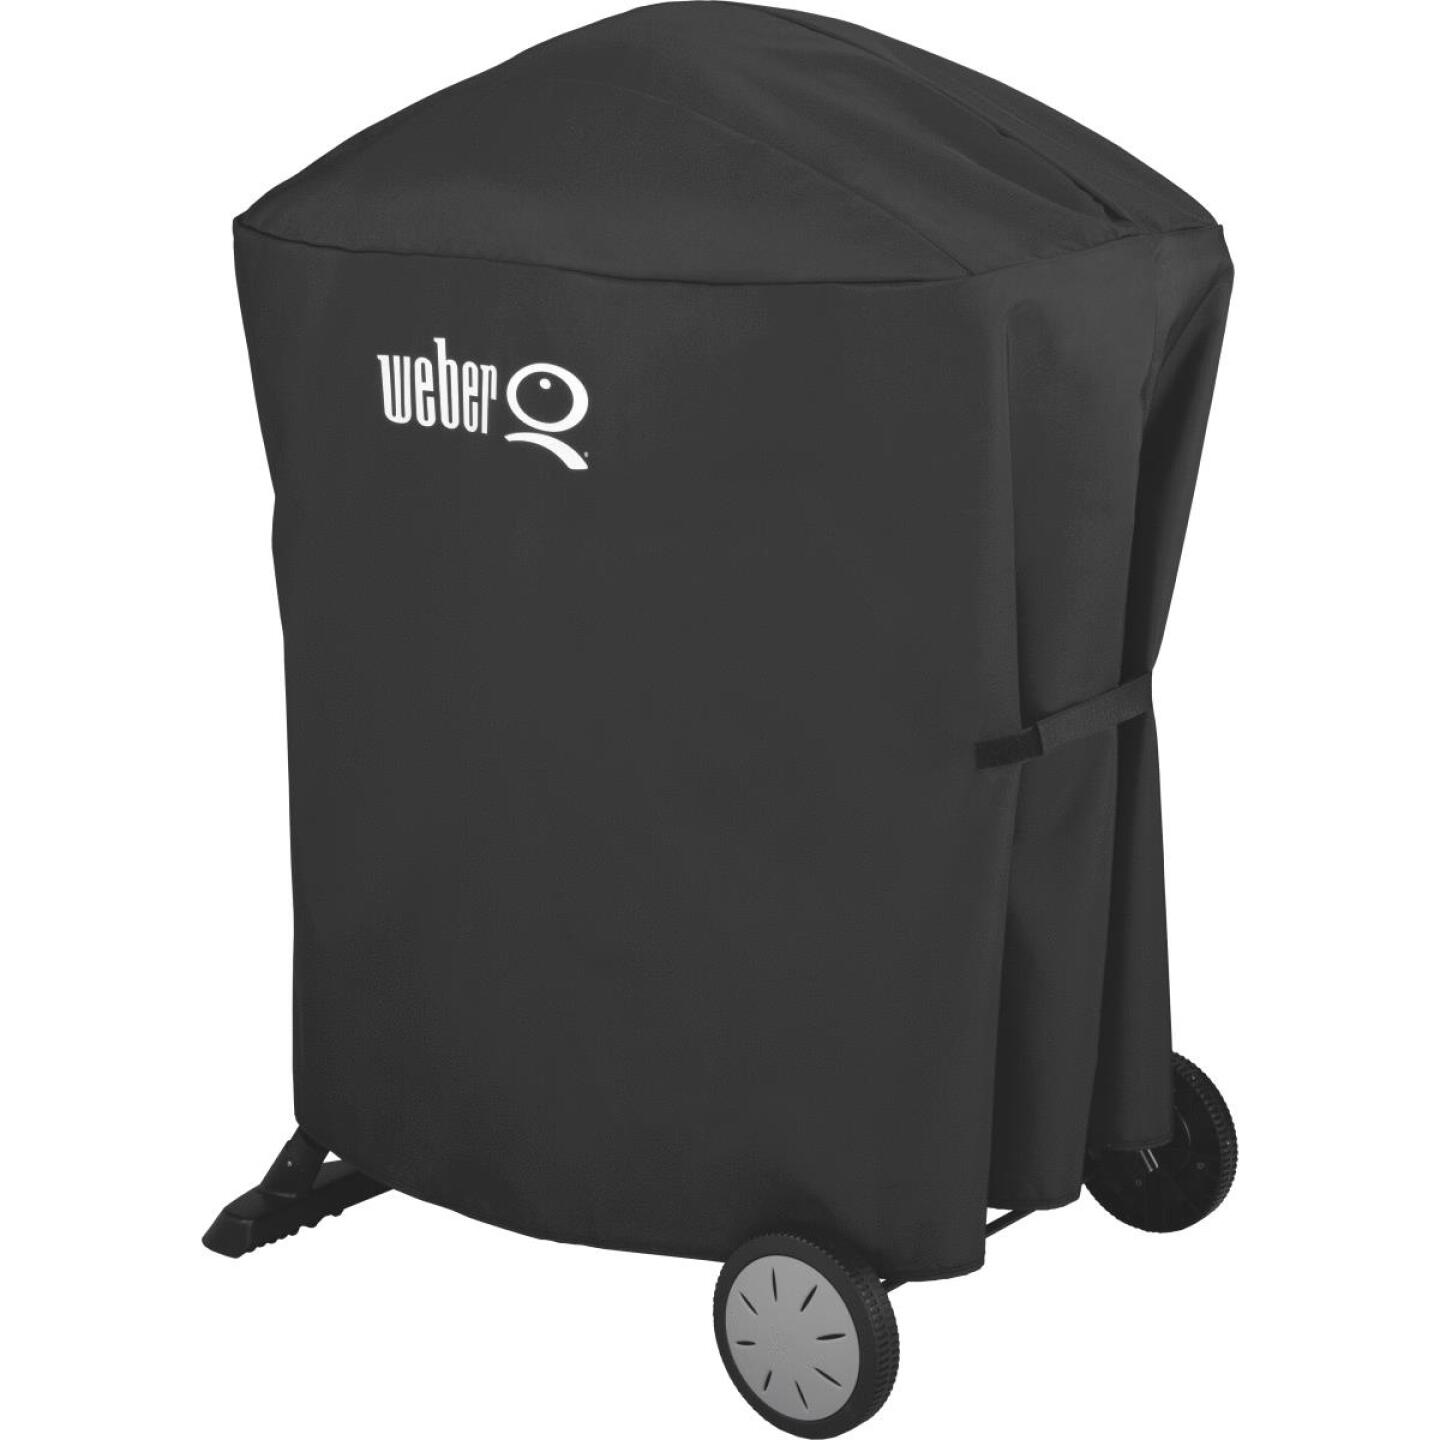 Weber Q 100/1000 & Q 200/2000 Q Cart 32 In. Black Vinyl Grill Cover Image 1